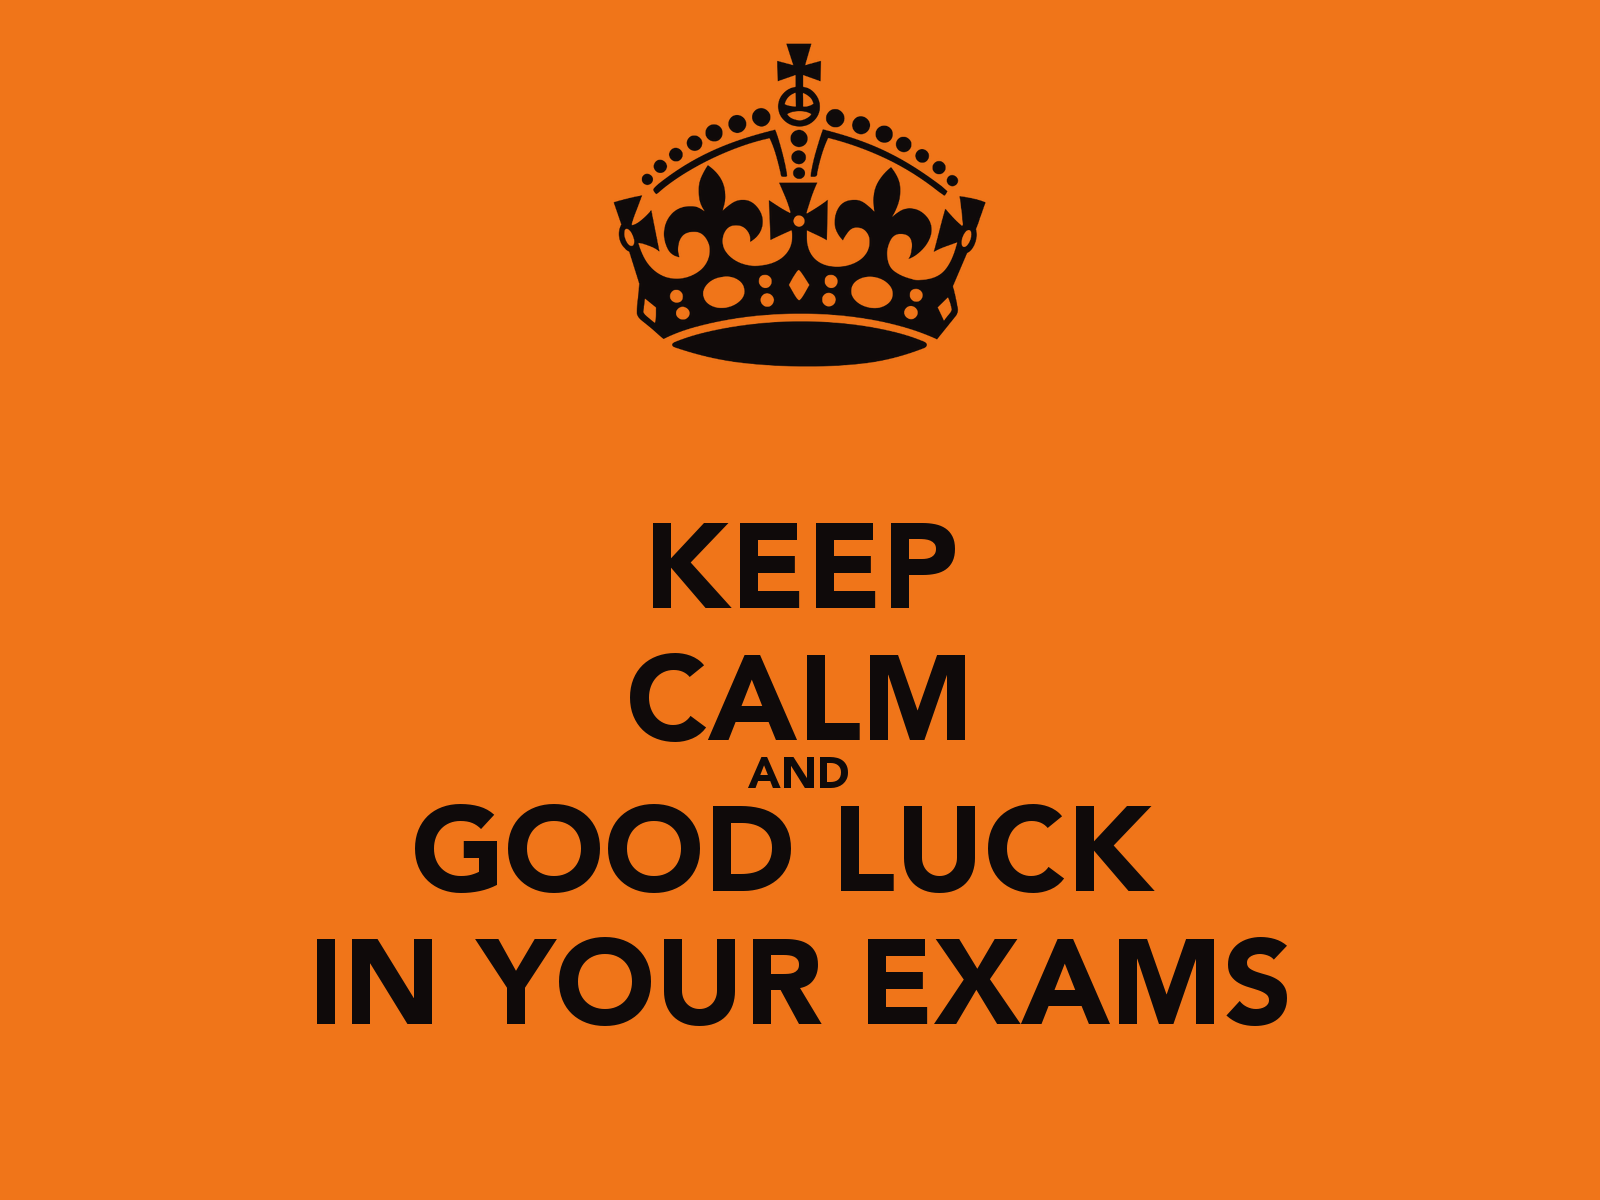 Keep Calm And Good Luck In Your Exams Image